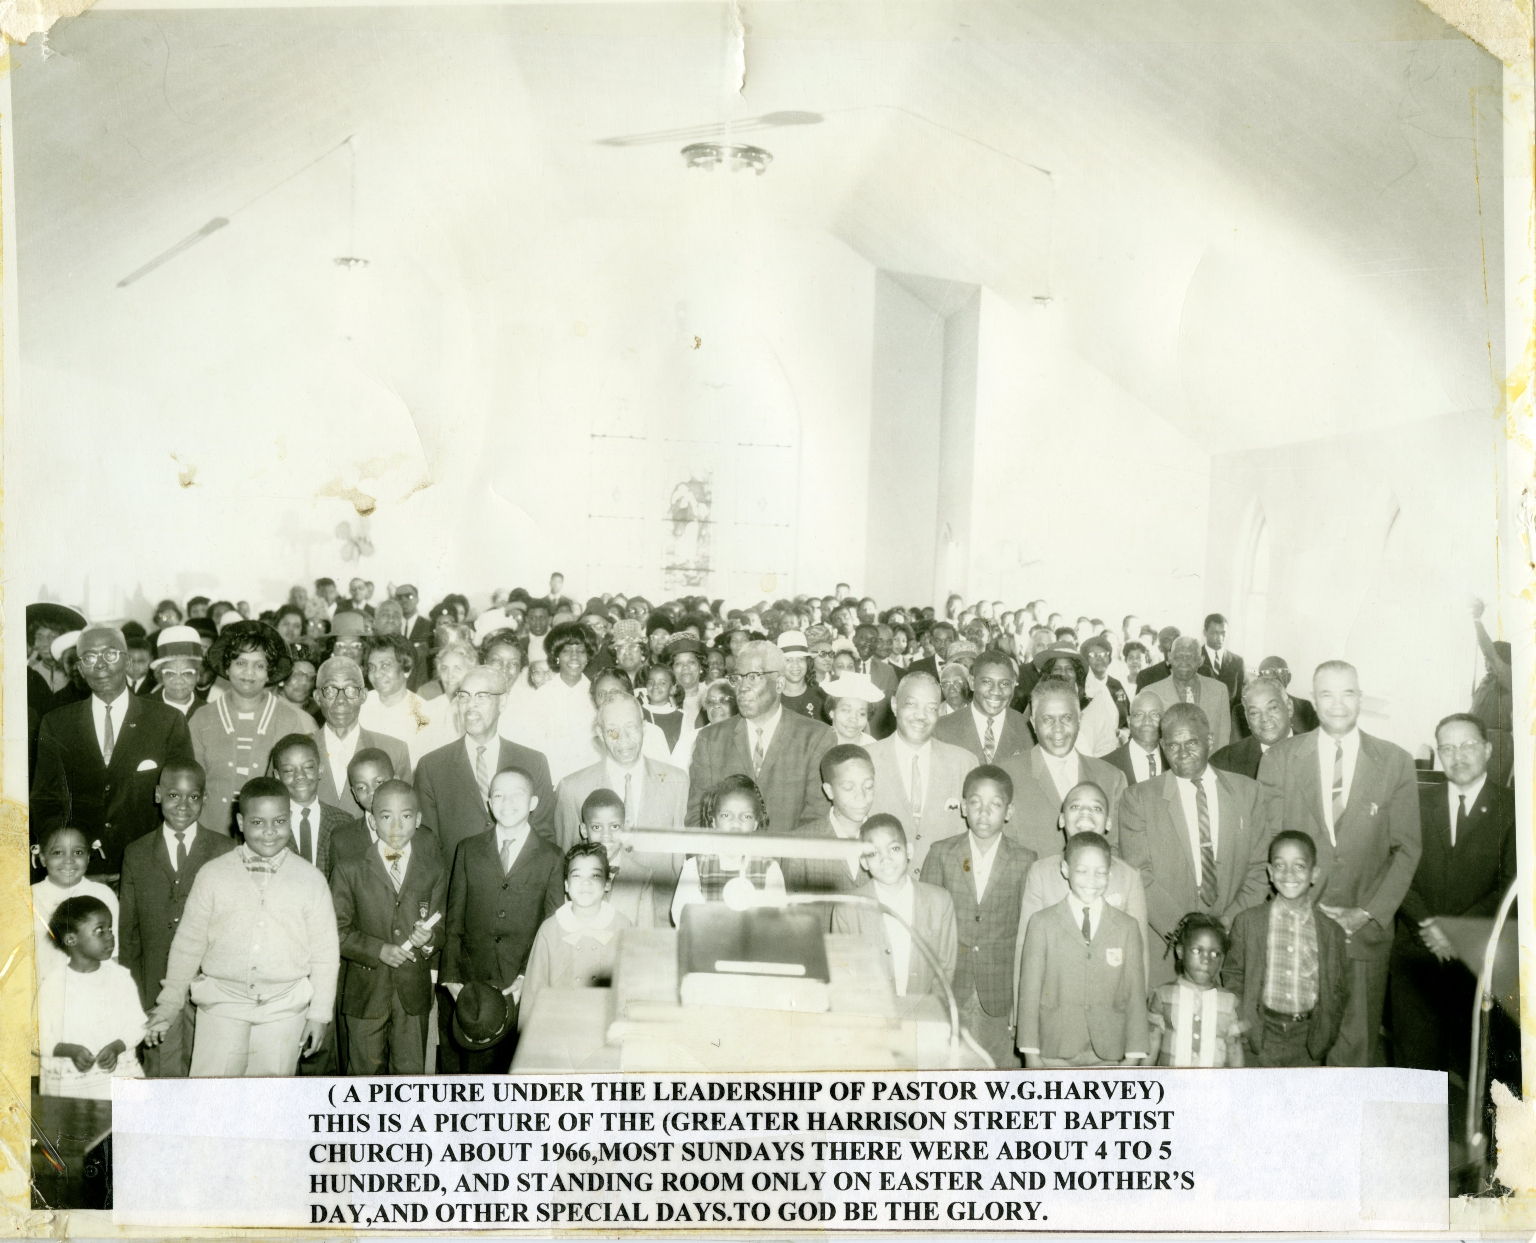 Congregation of Harrison Street Baptist Church